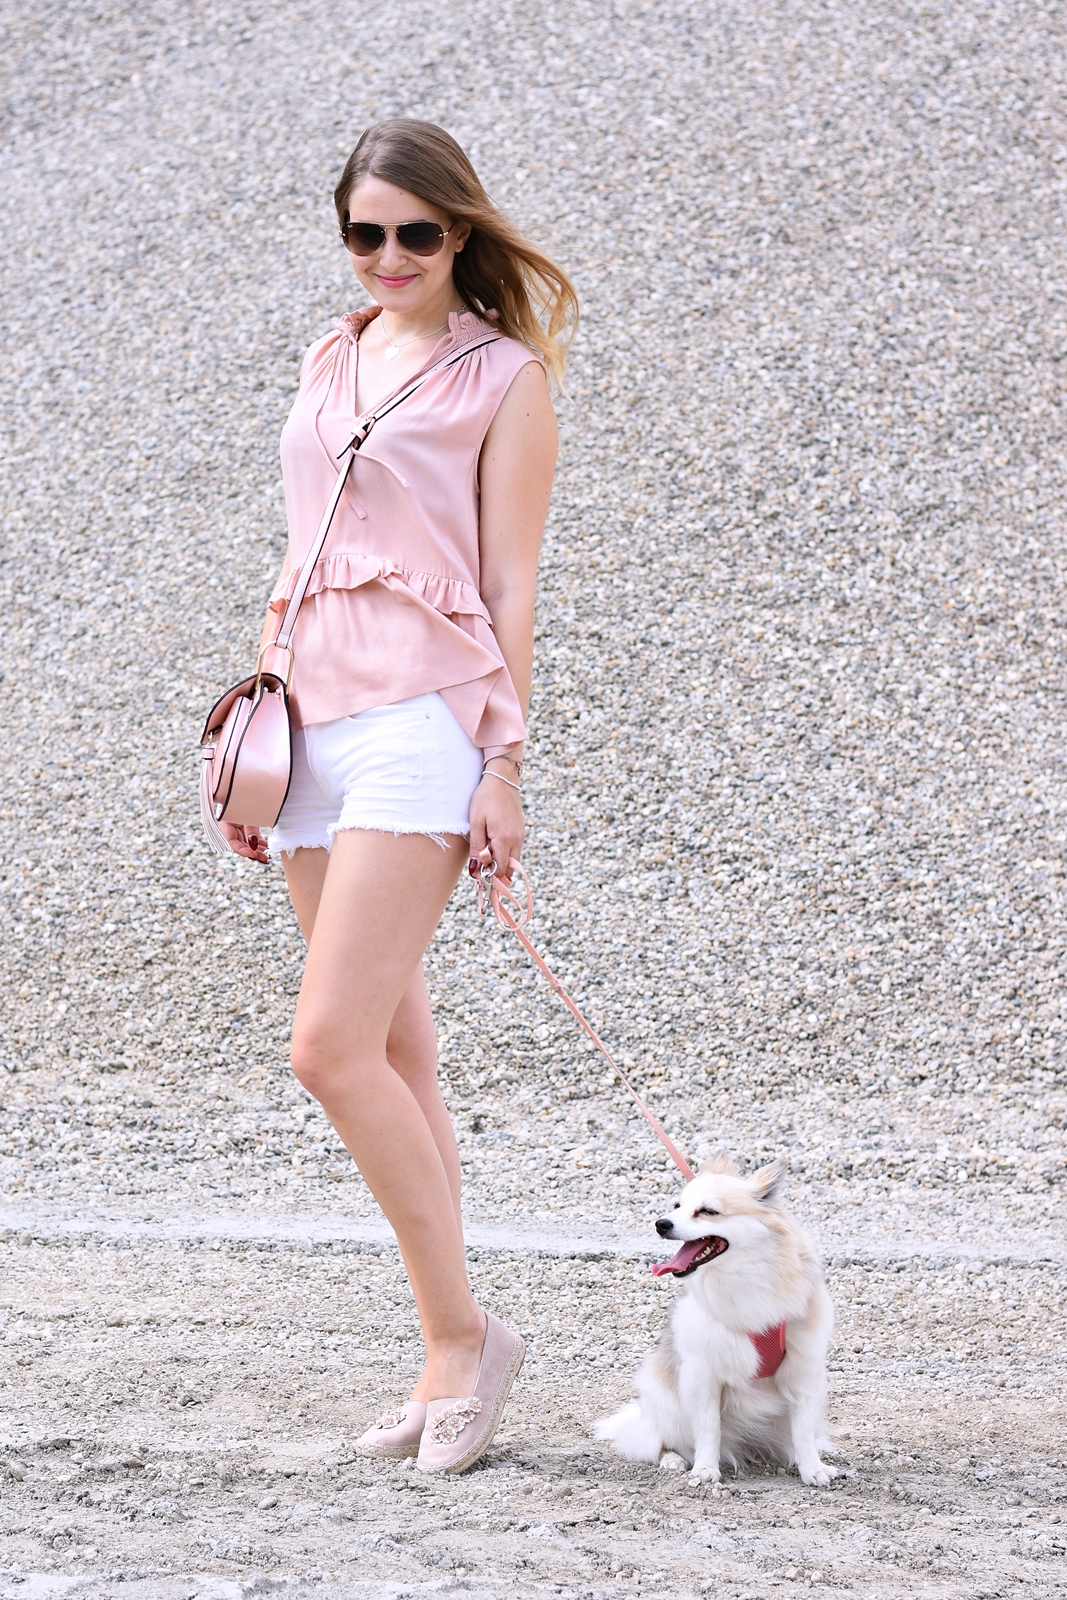 Lady loves - ein Schmuckstück zum verlieben - pastell Outfit - Fotogravur Schmuck - Zwergspitz - Shooting mit Hund - Mode - Fashion - Look - Fashionladyloves by Tamara Wagner - Fashionblog -Modeblog